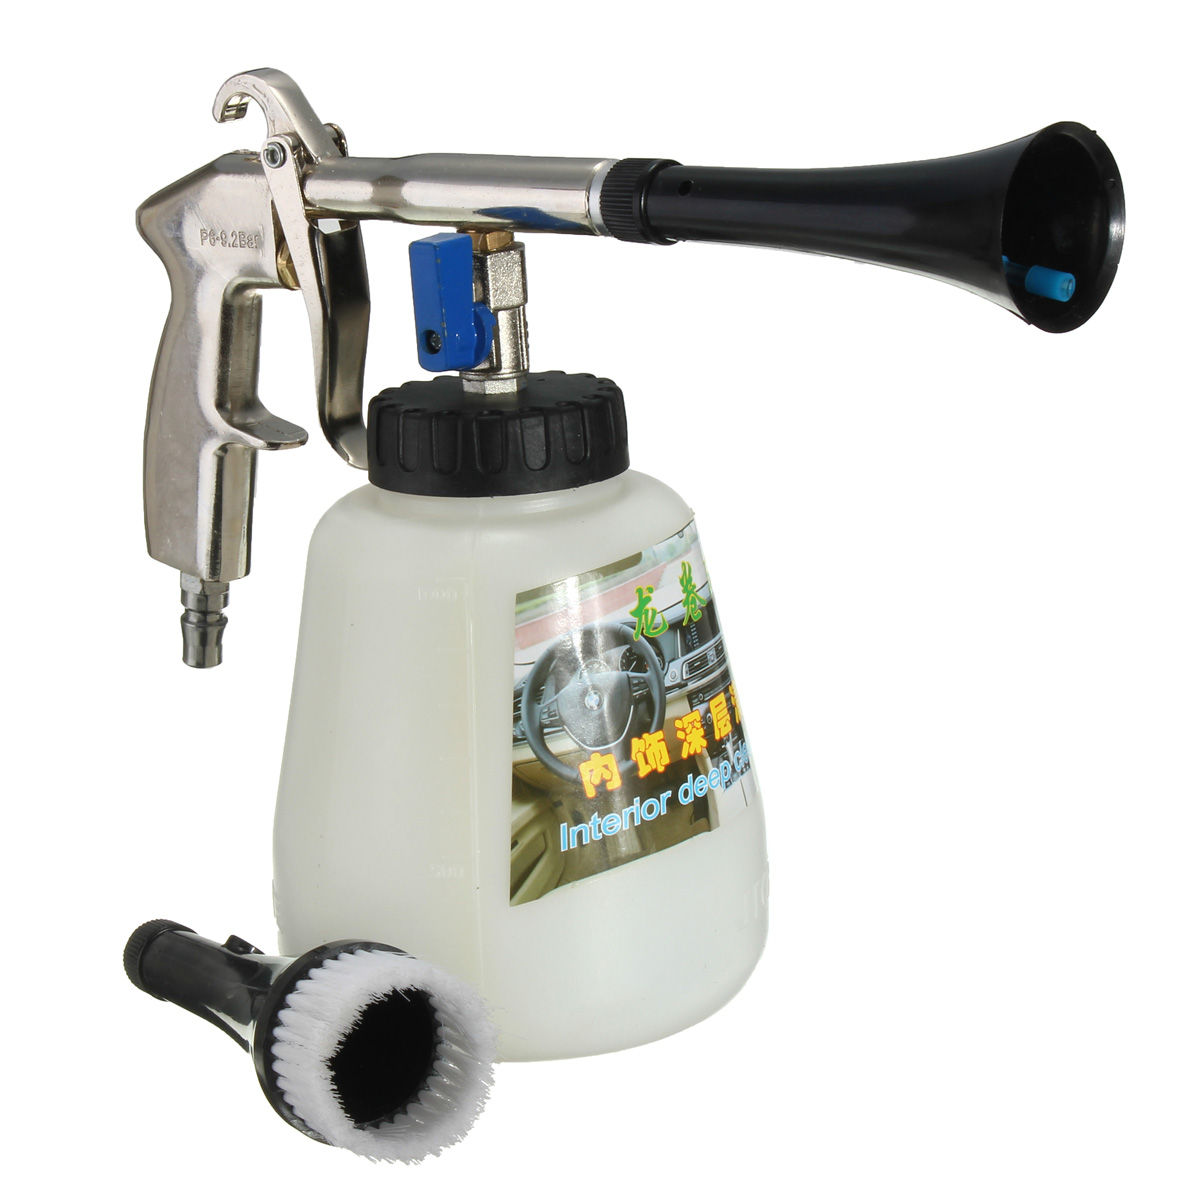 Hot Sale multifunctional high pressure Air Opearted car washer equipment foam gun car pistoal cleaning gun car washing tool(China (Mainland))